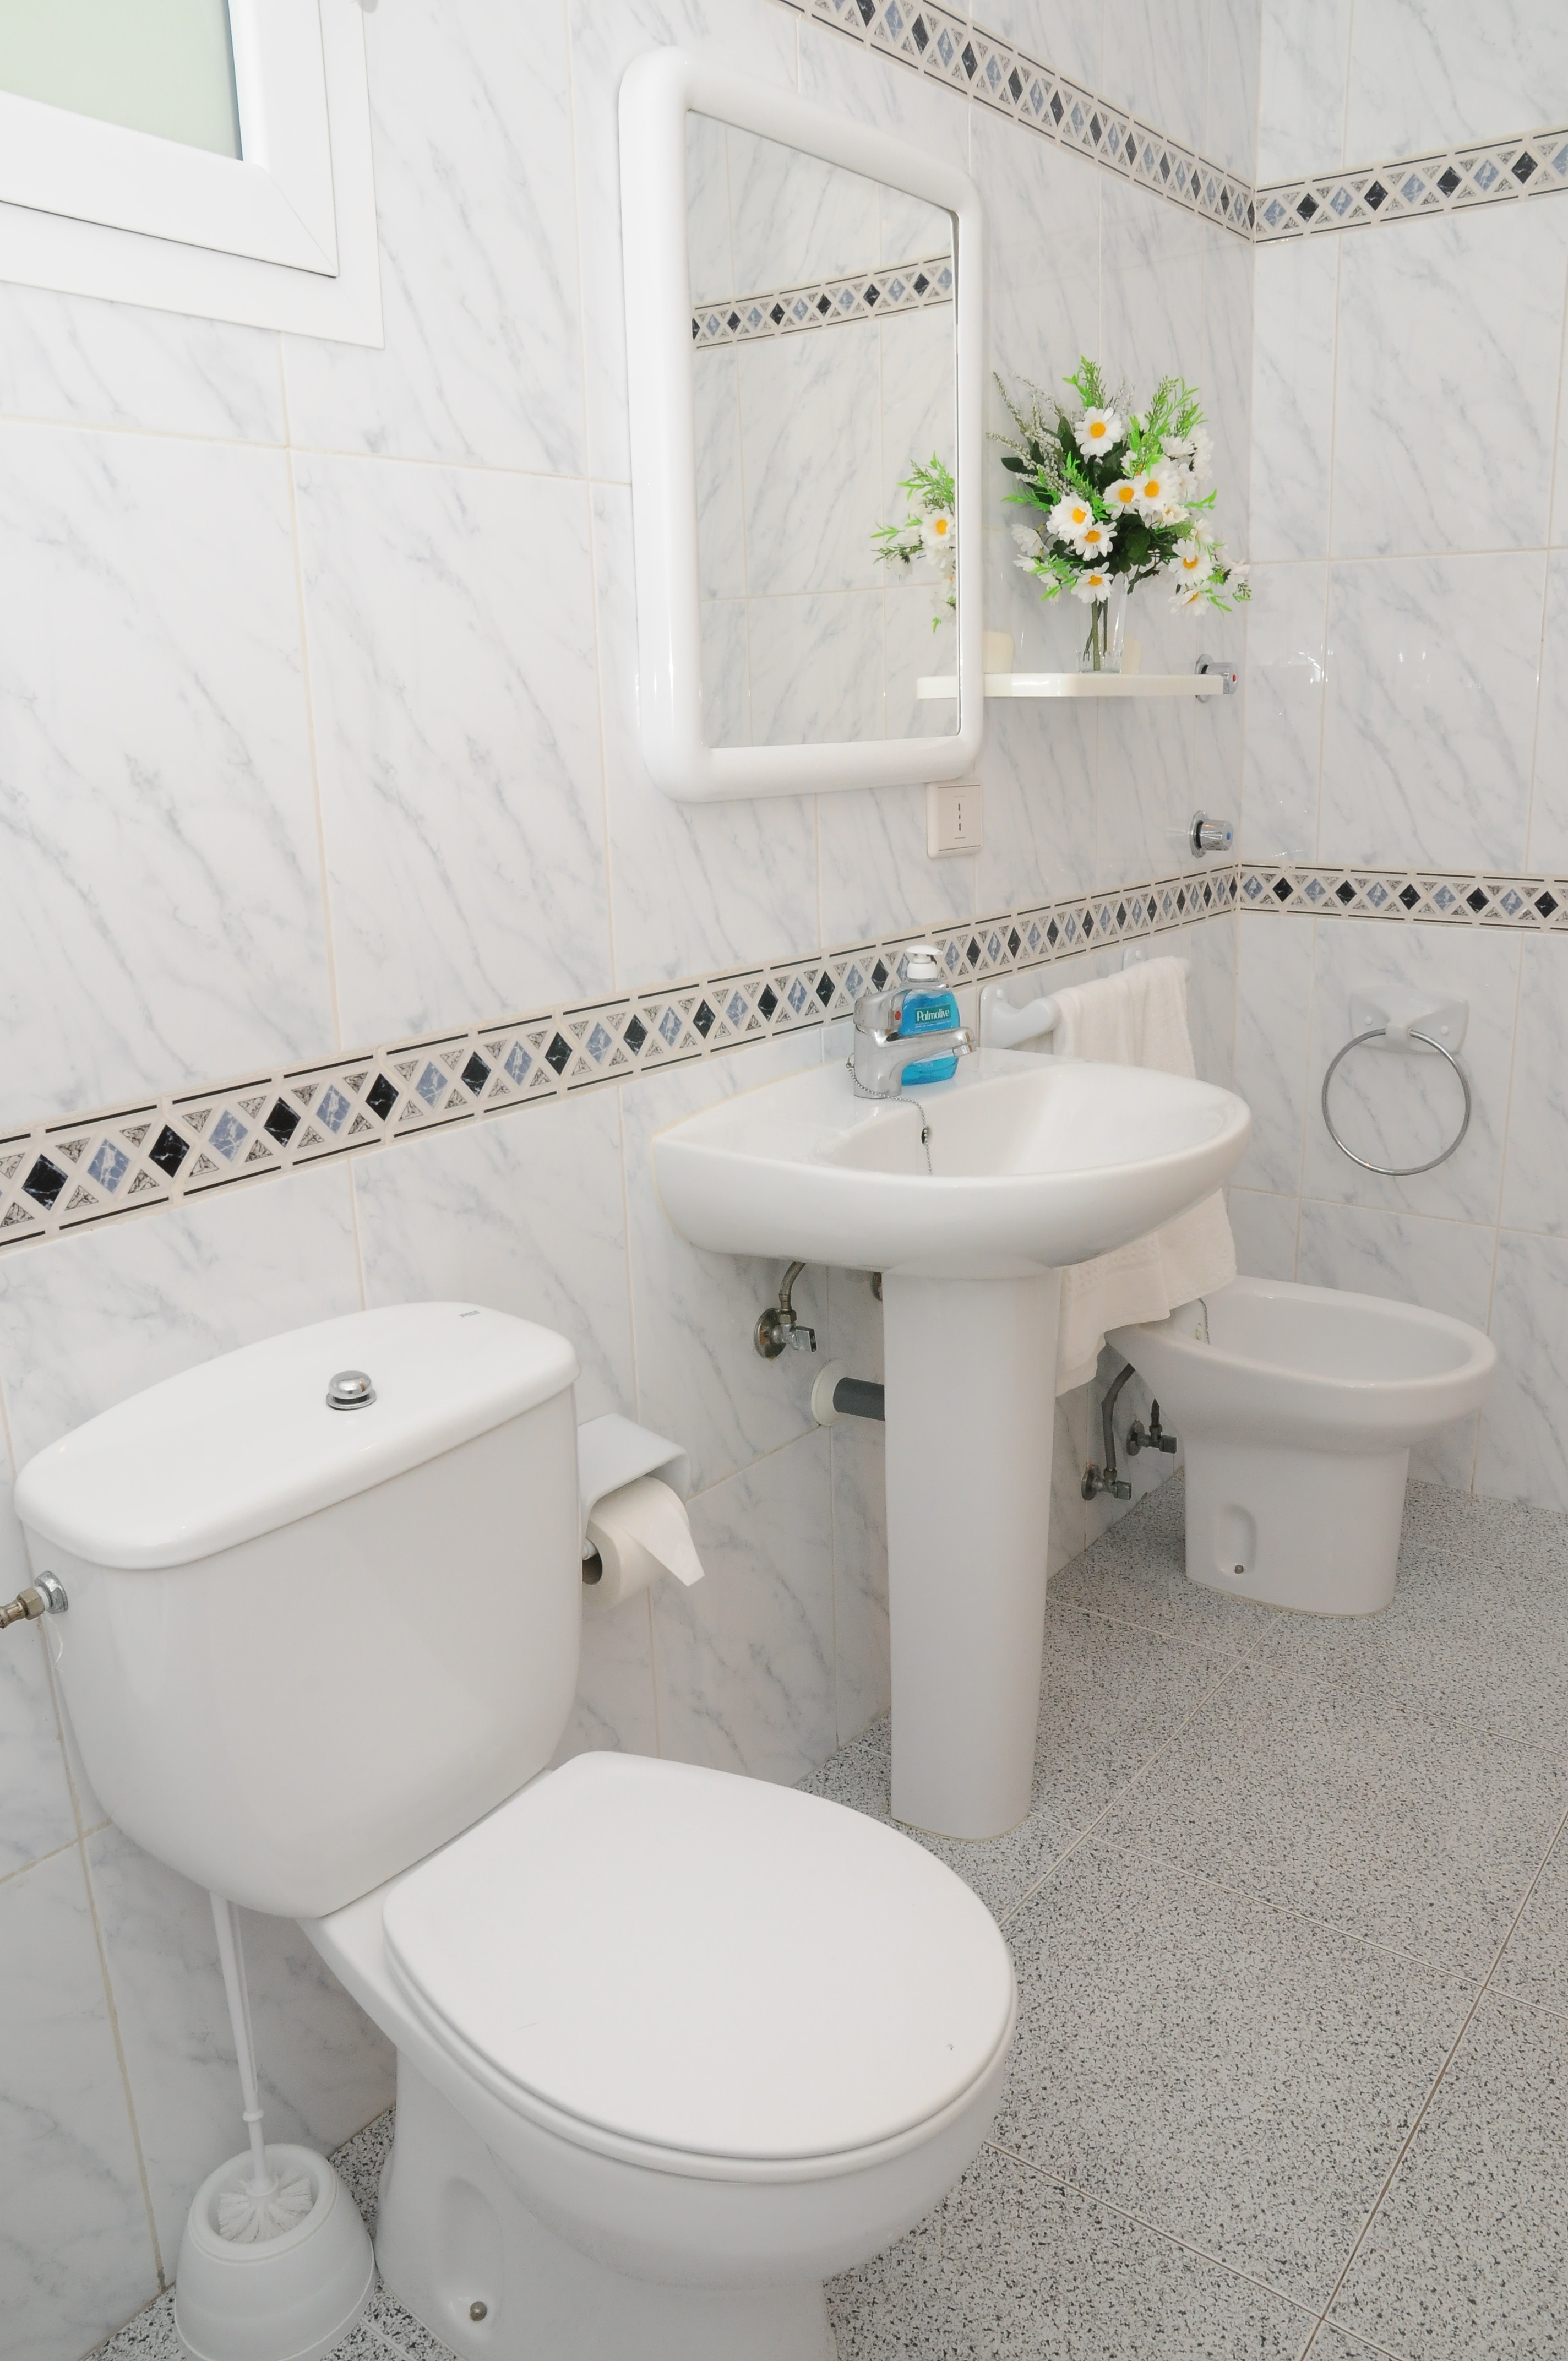 Toilet Room with bath and bidet